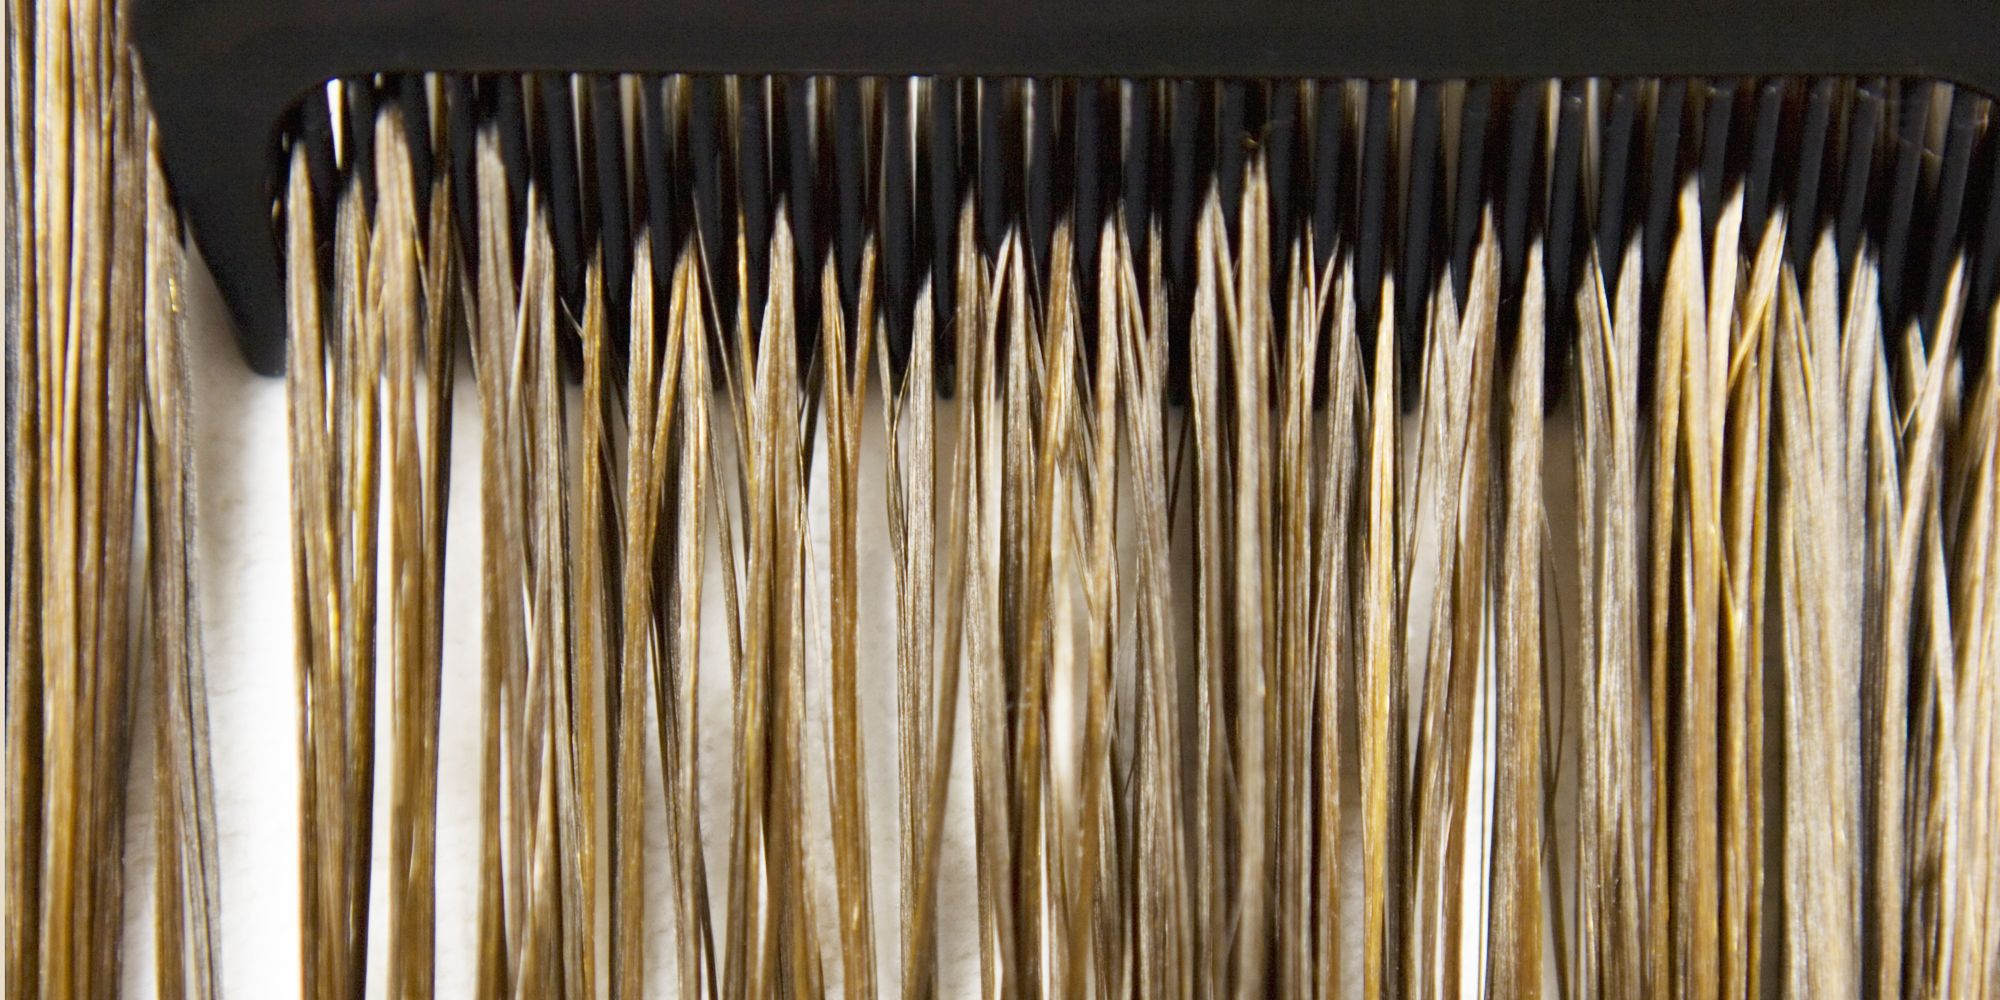 Scalp Brush Benefits Why You Should Use A Scalp Brush